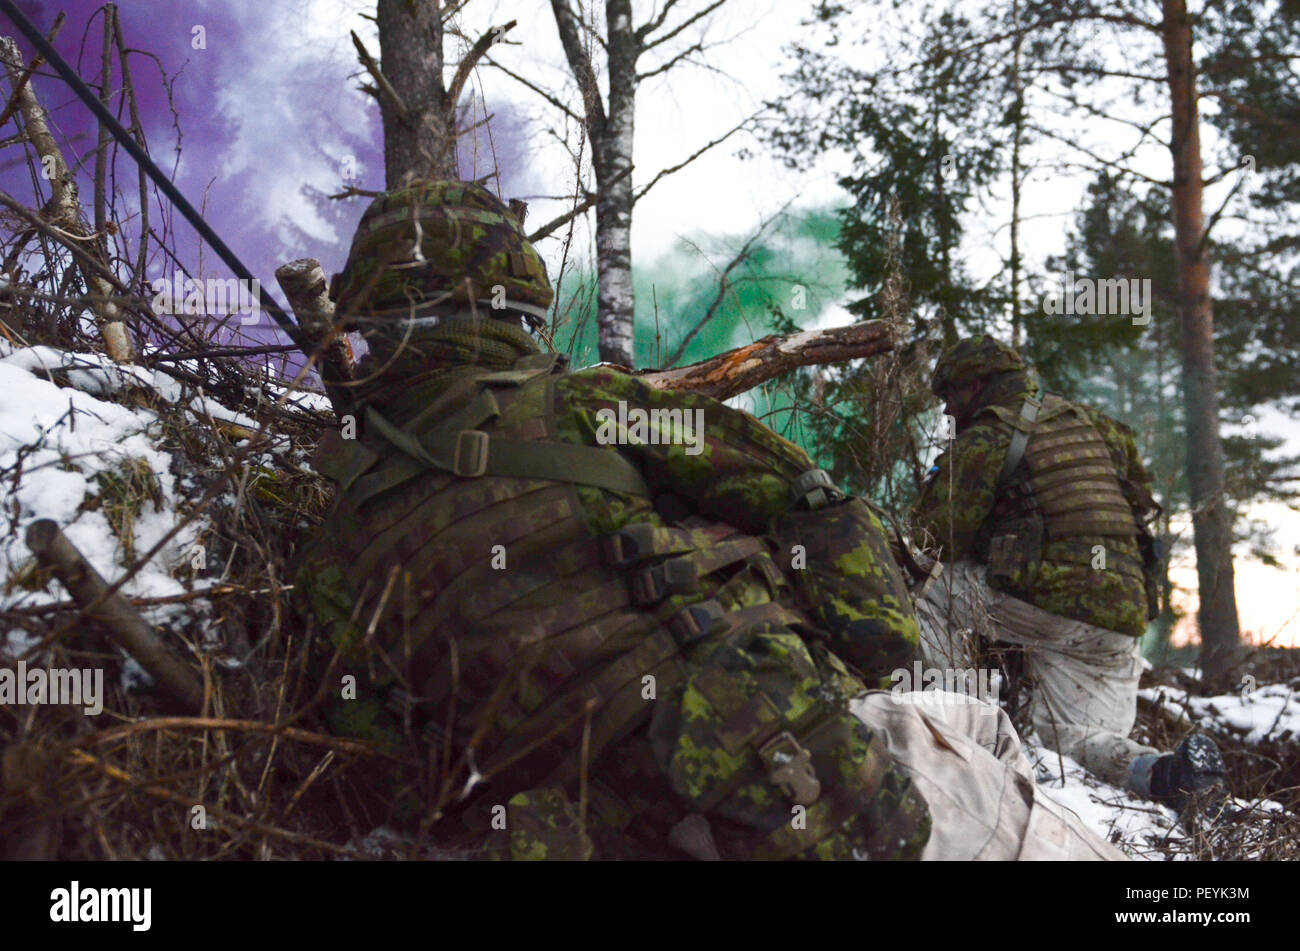 Estonian soldiers throw smoke bombs for concealment in order to approach the objective during Exercise Force on Force at Tapa Training Area in Estonia, Feb. 16, 2016. (U.S. Army photo by Staff Sgt. Steven M. Colvin/Released) - Stock Image